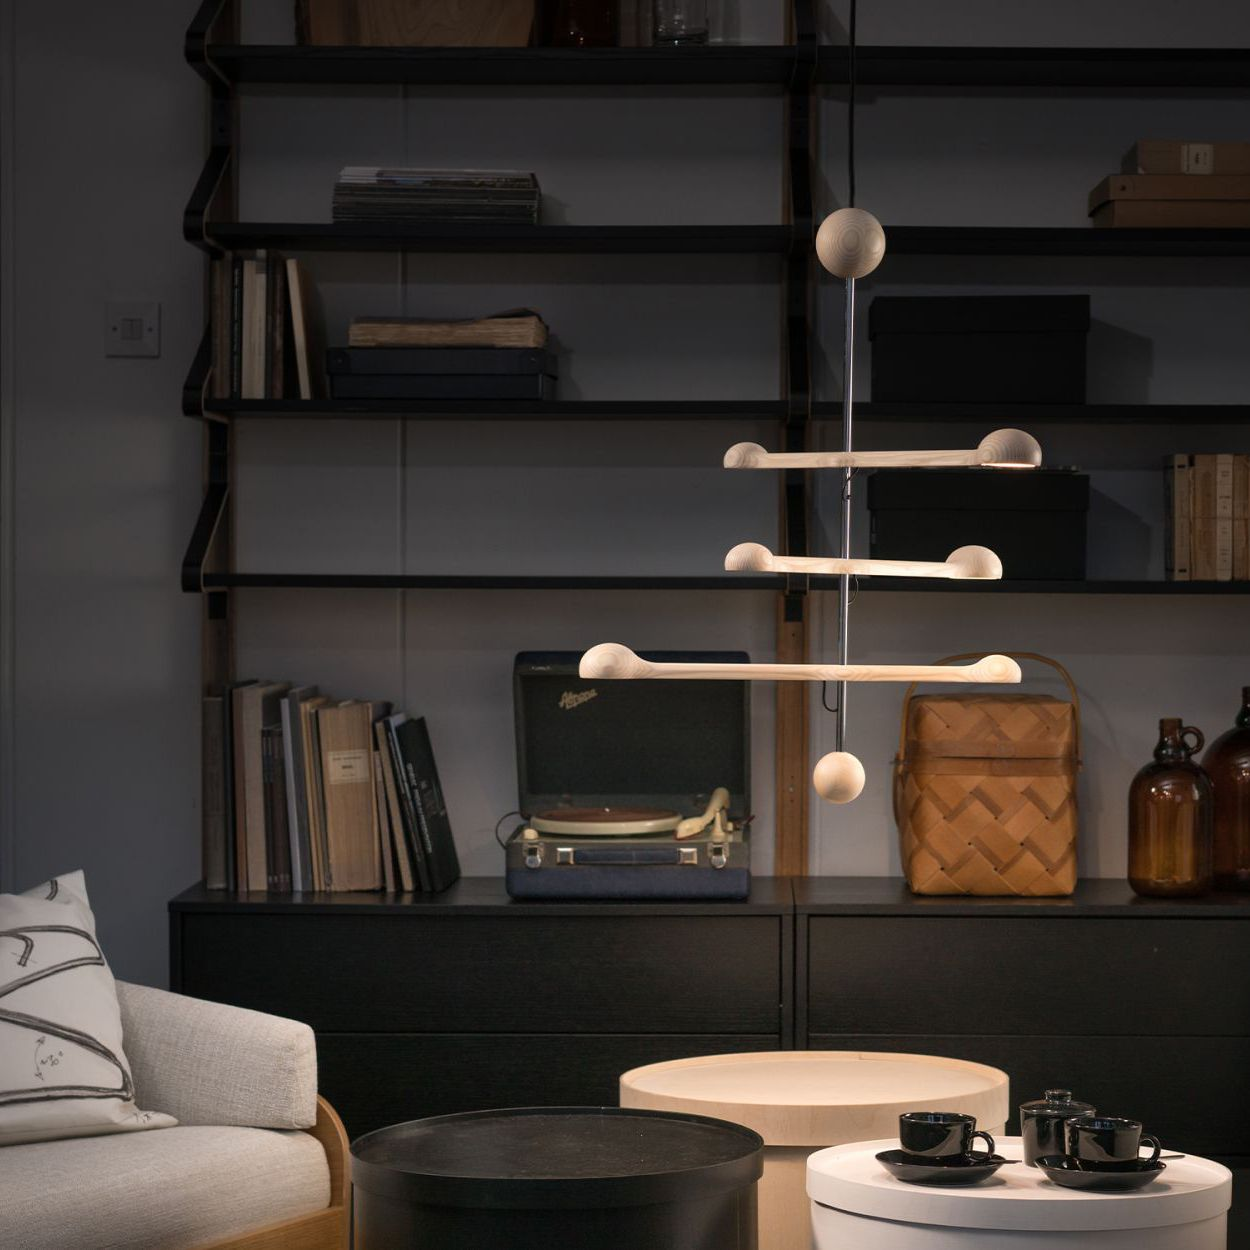 Lighting-G4led-livingroom-pendantlamp-wood-TapioAnttilaCollection-cropped